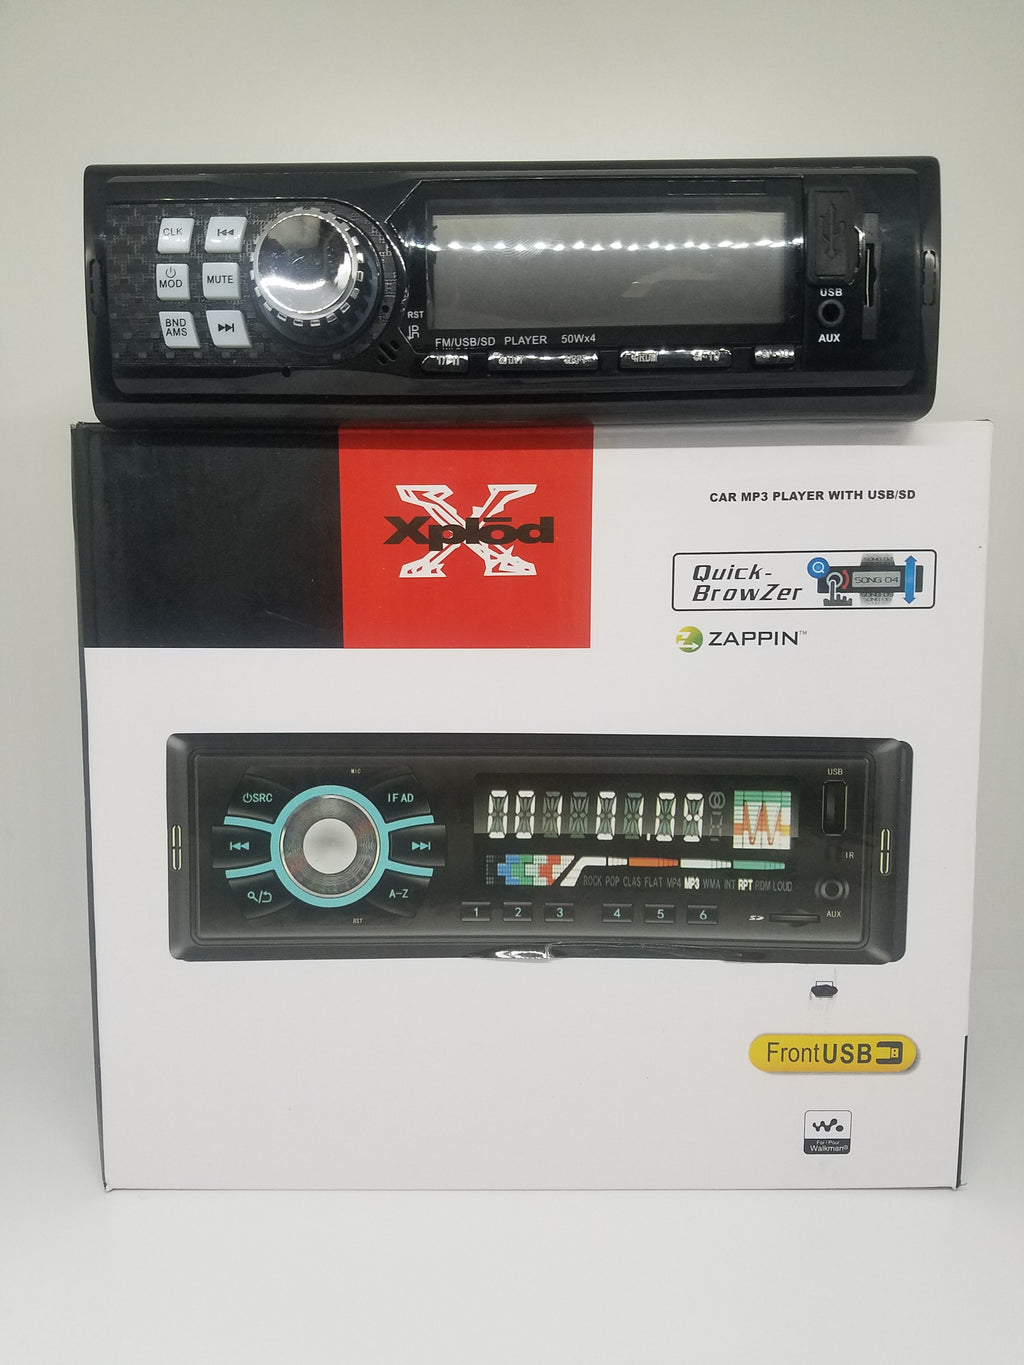 Radio para Carro con funcion de FM, Aux, Bluetooth, USB y Micro SD